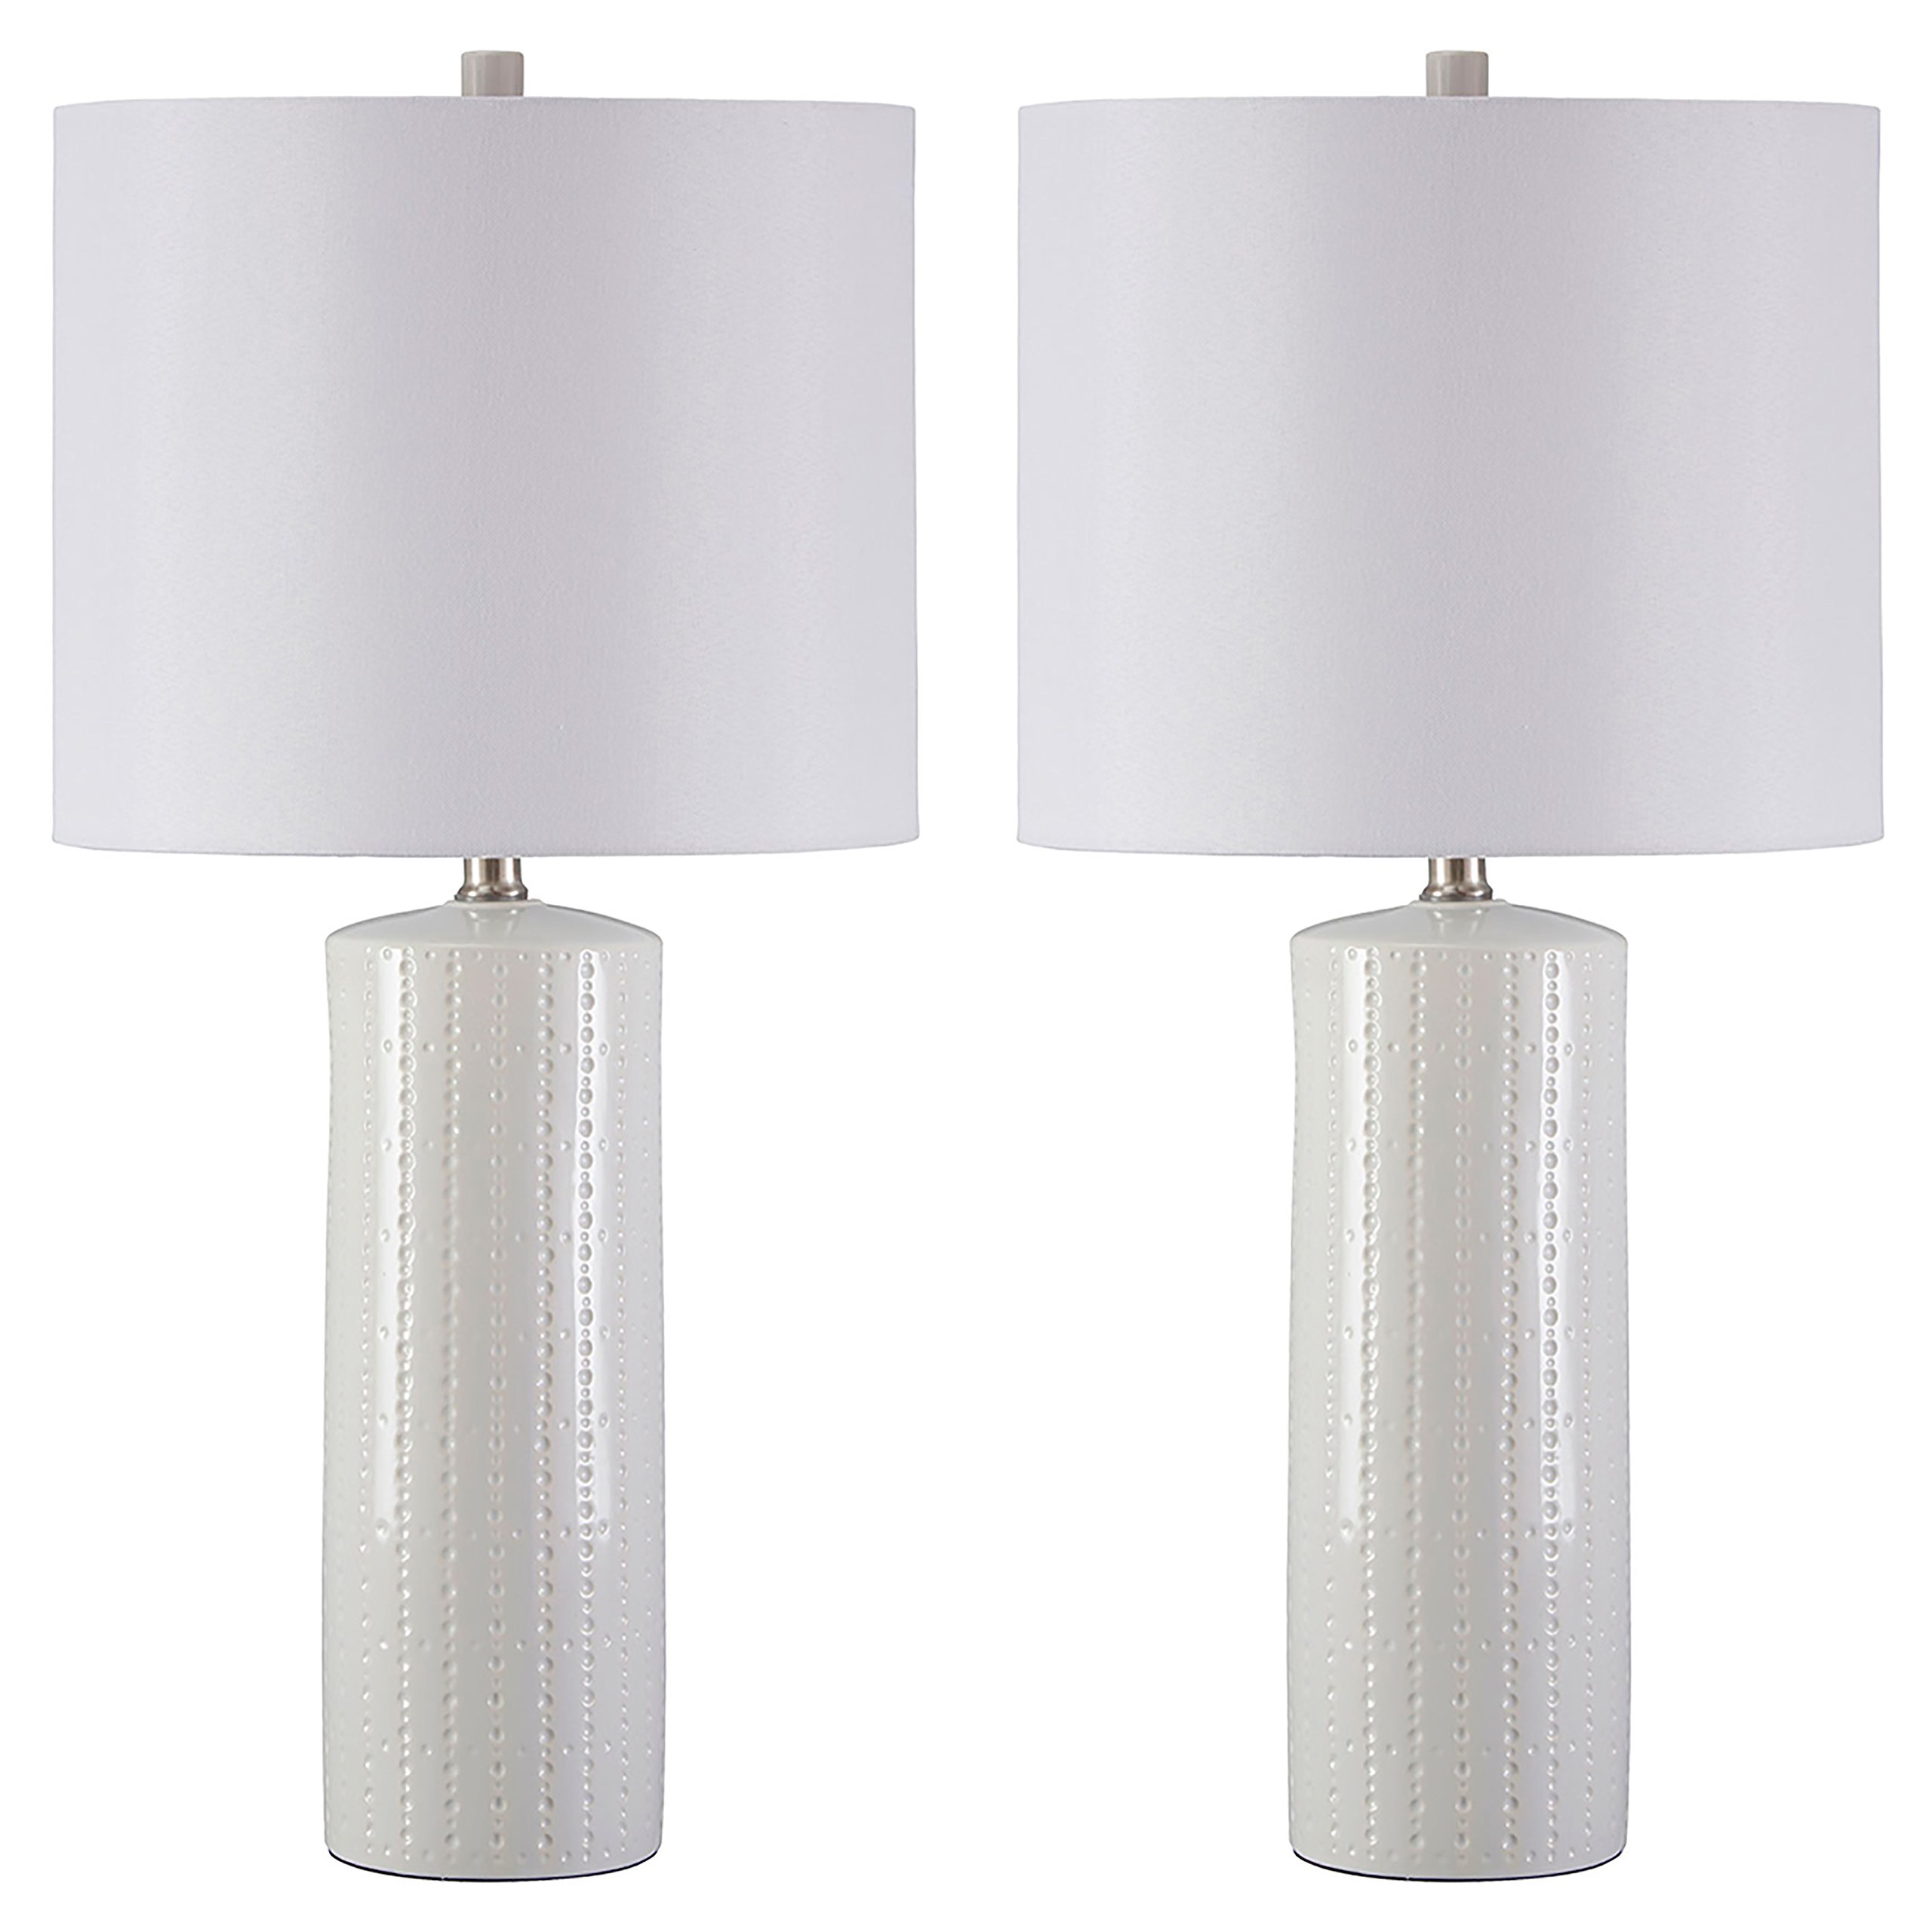 Ashley Furniture Signature Design -  Steuben Textured Ceramic Table Lamp Set with Drum Shades - Contemporary - Set of 2 - White